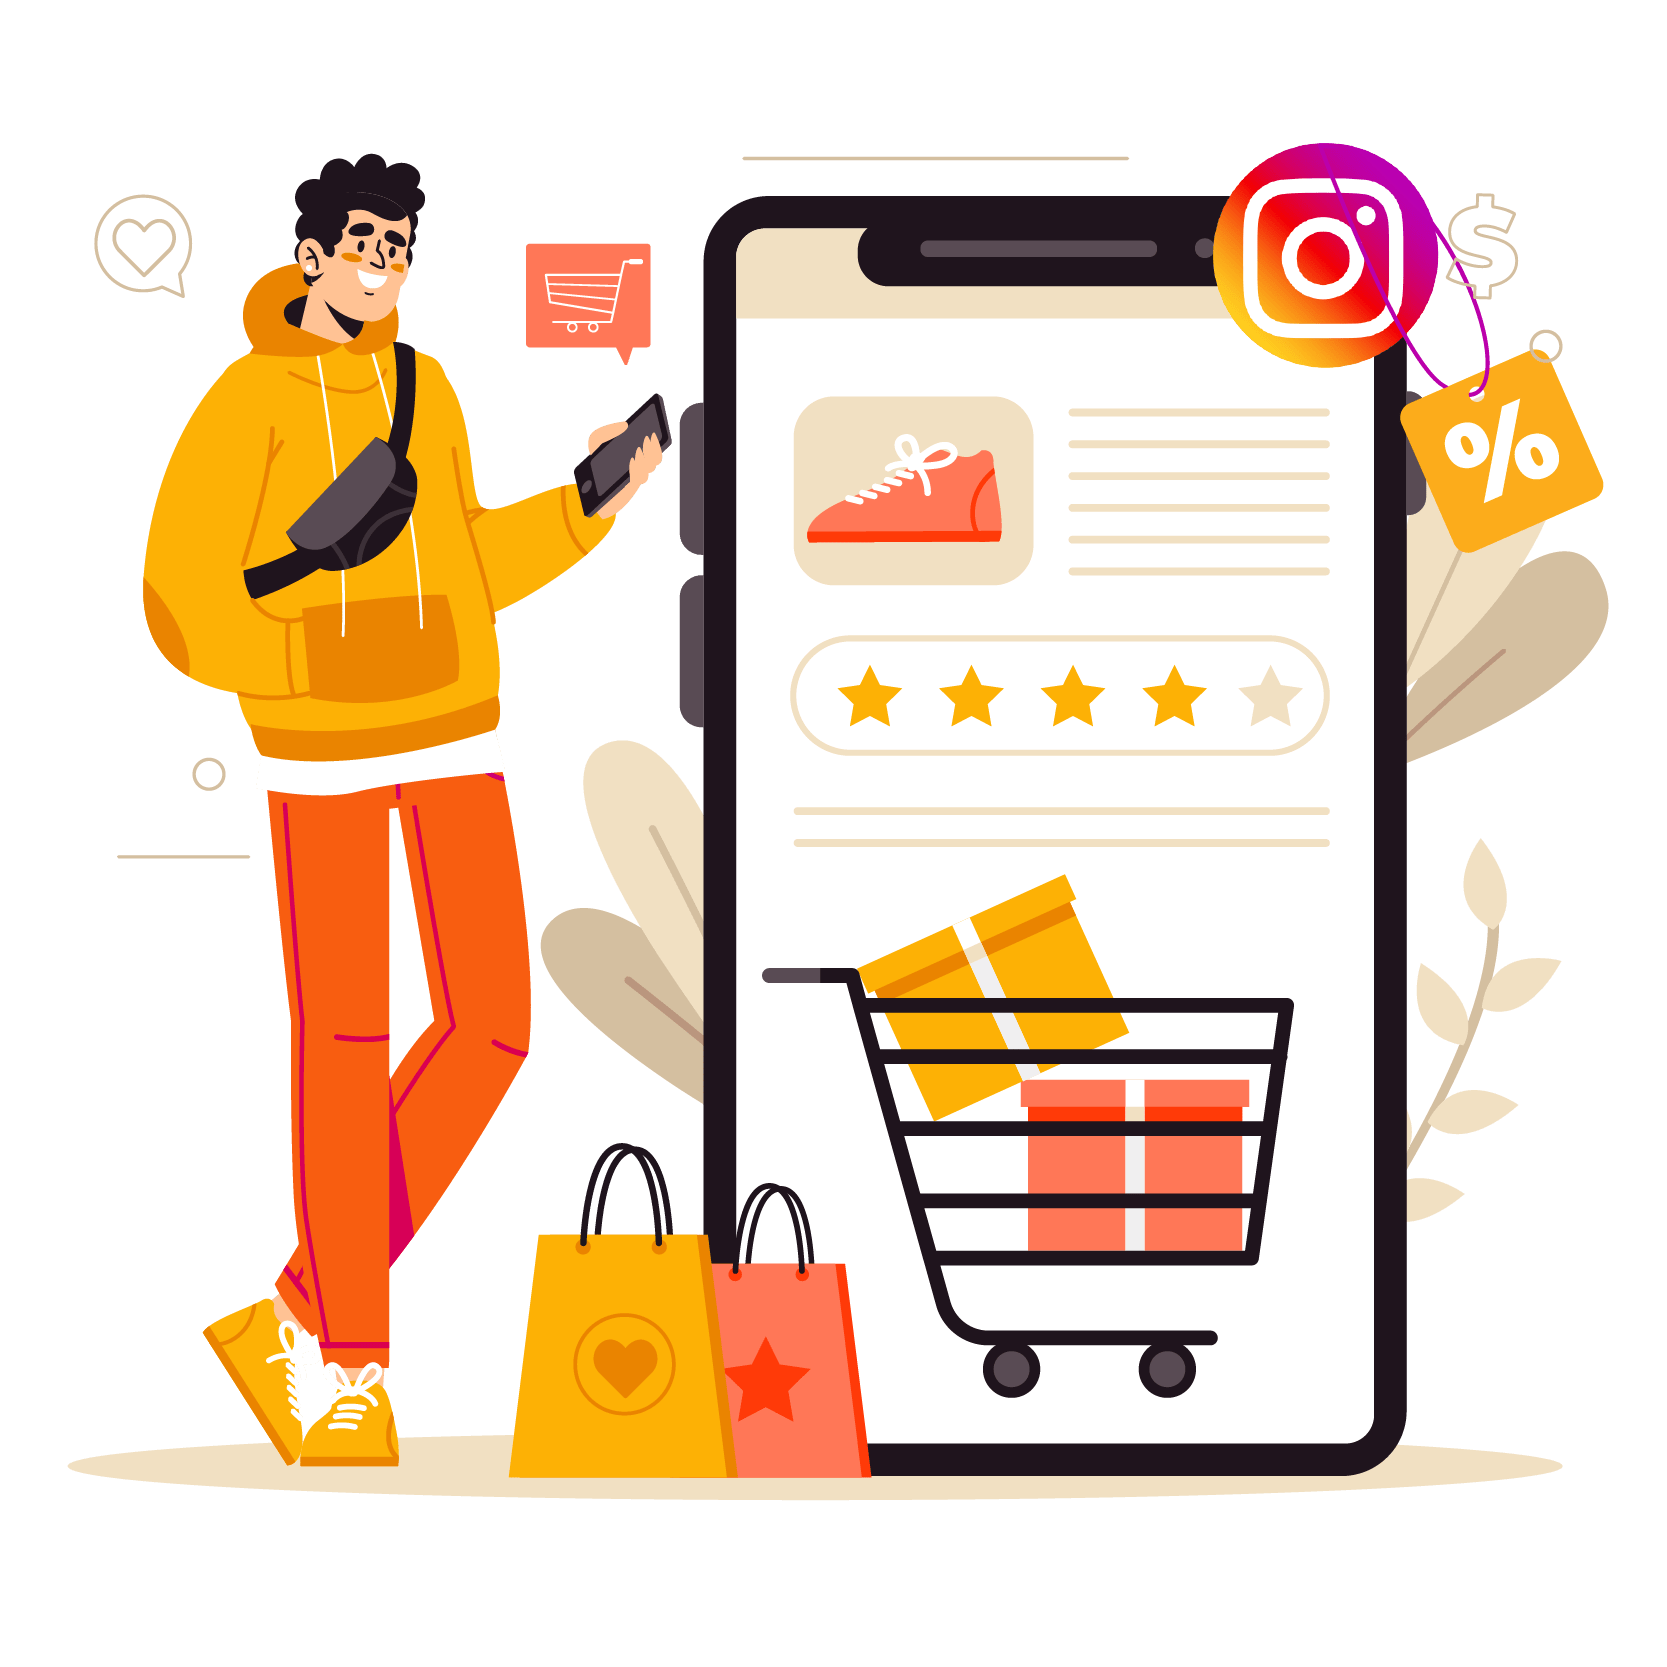 Instagram For E-Commerce - Changing The Way Customers Shop